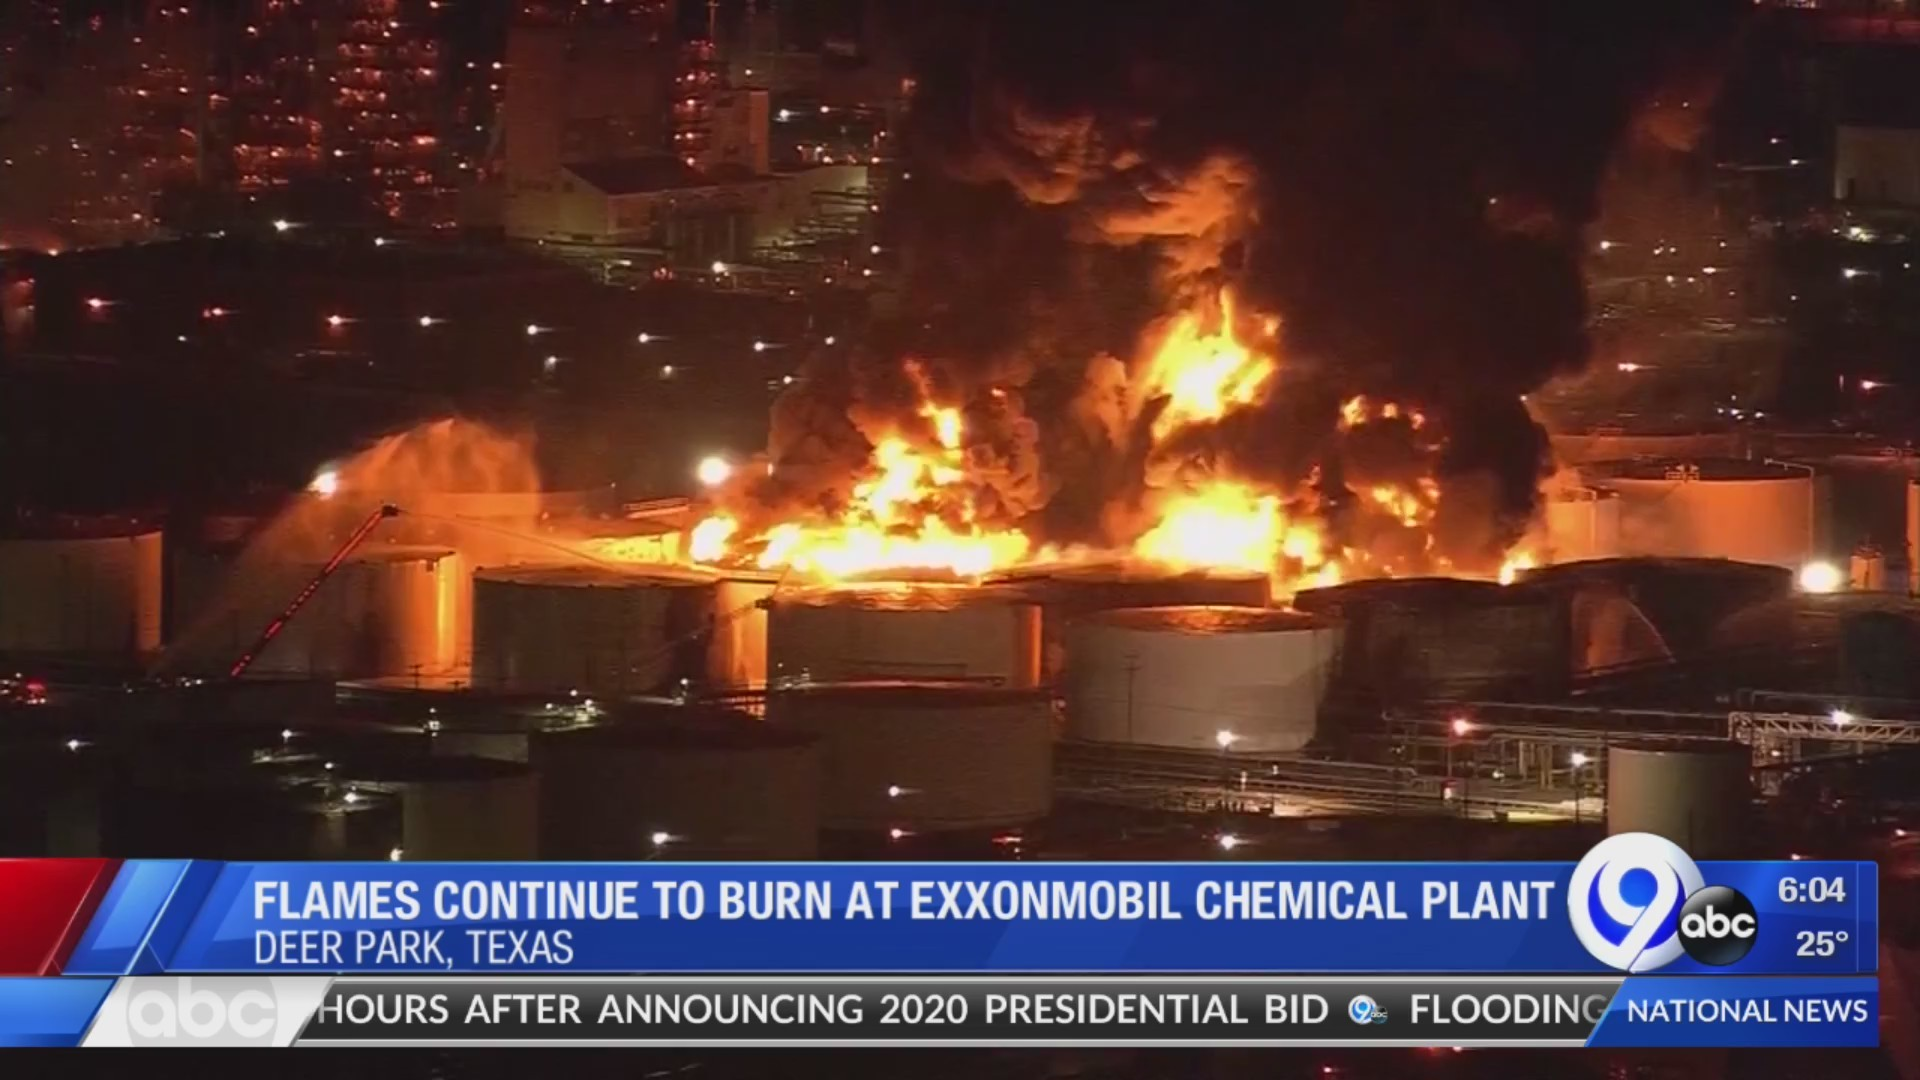 Chemical_plant_fire_in_Texas_continues_t_0_20190319110218